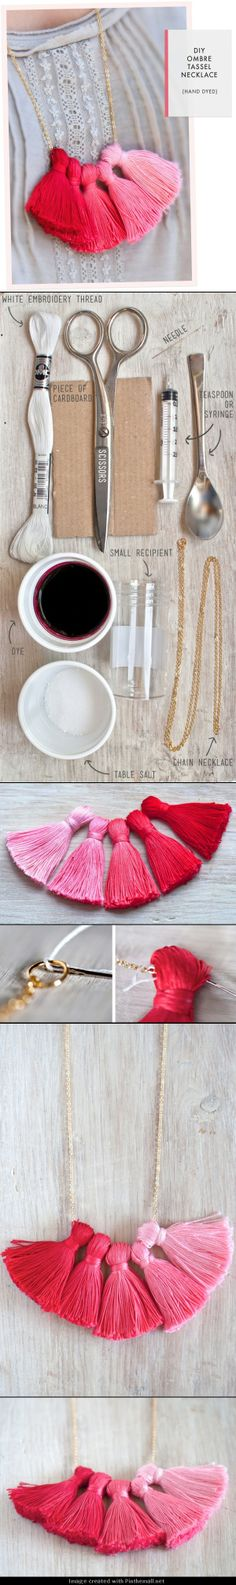 DIY DECOR AND CRAFTS: Октомври 2013